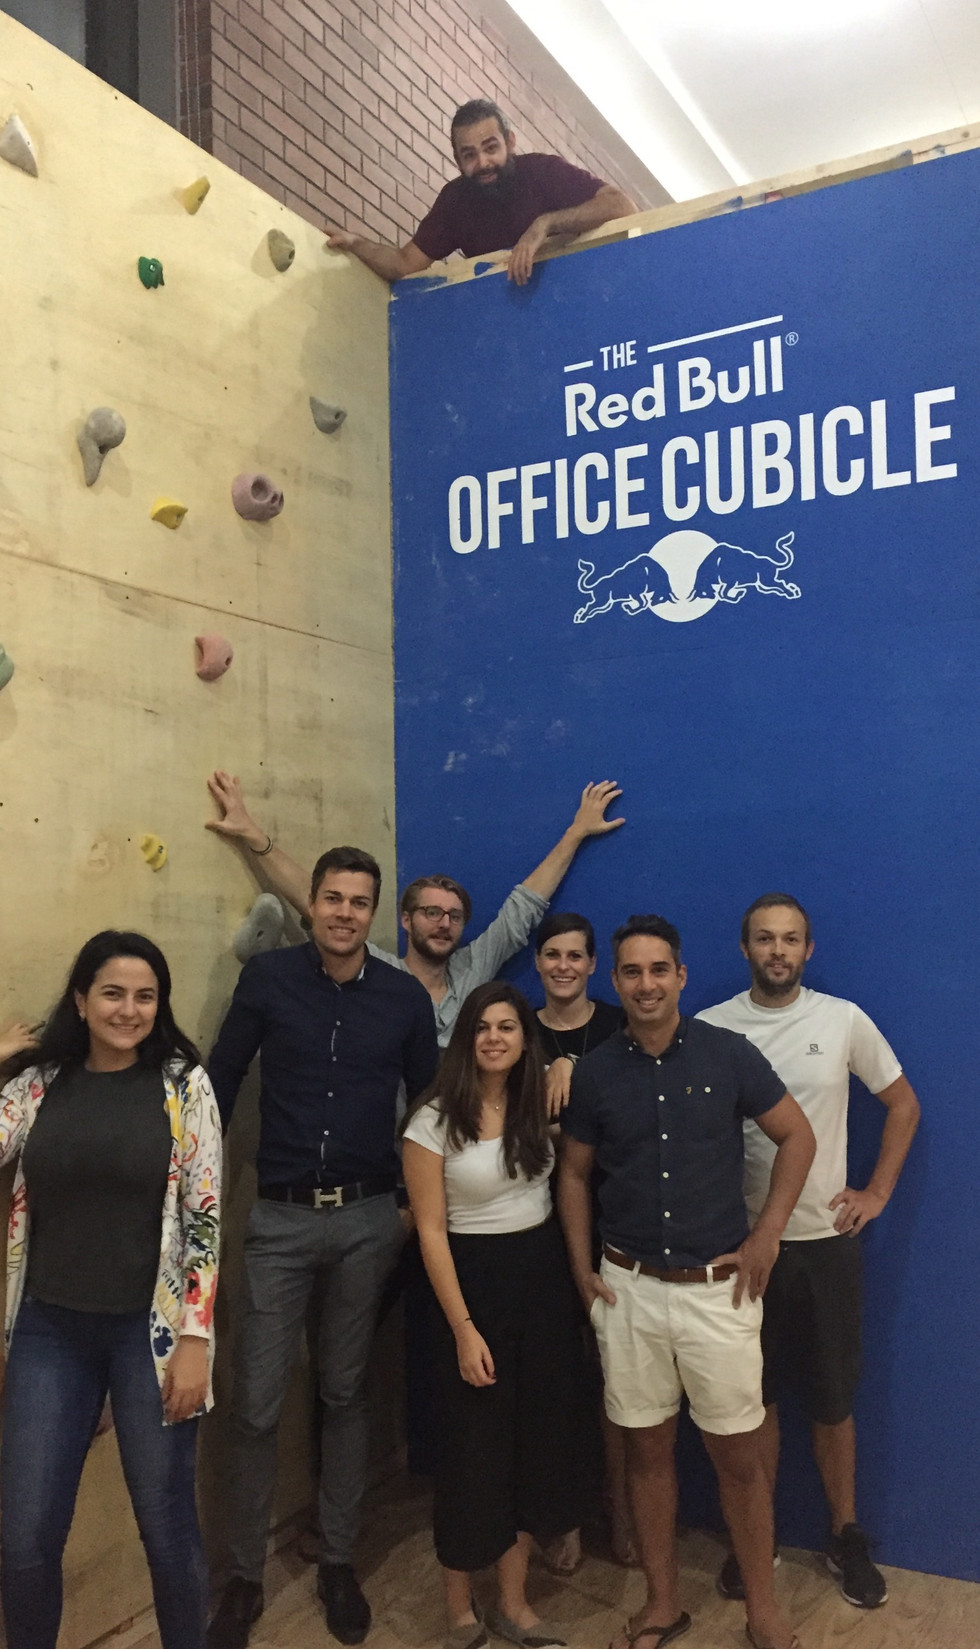 Winning a pitch was never so much fun. #RedBull